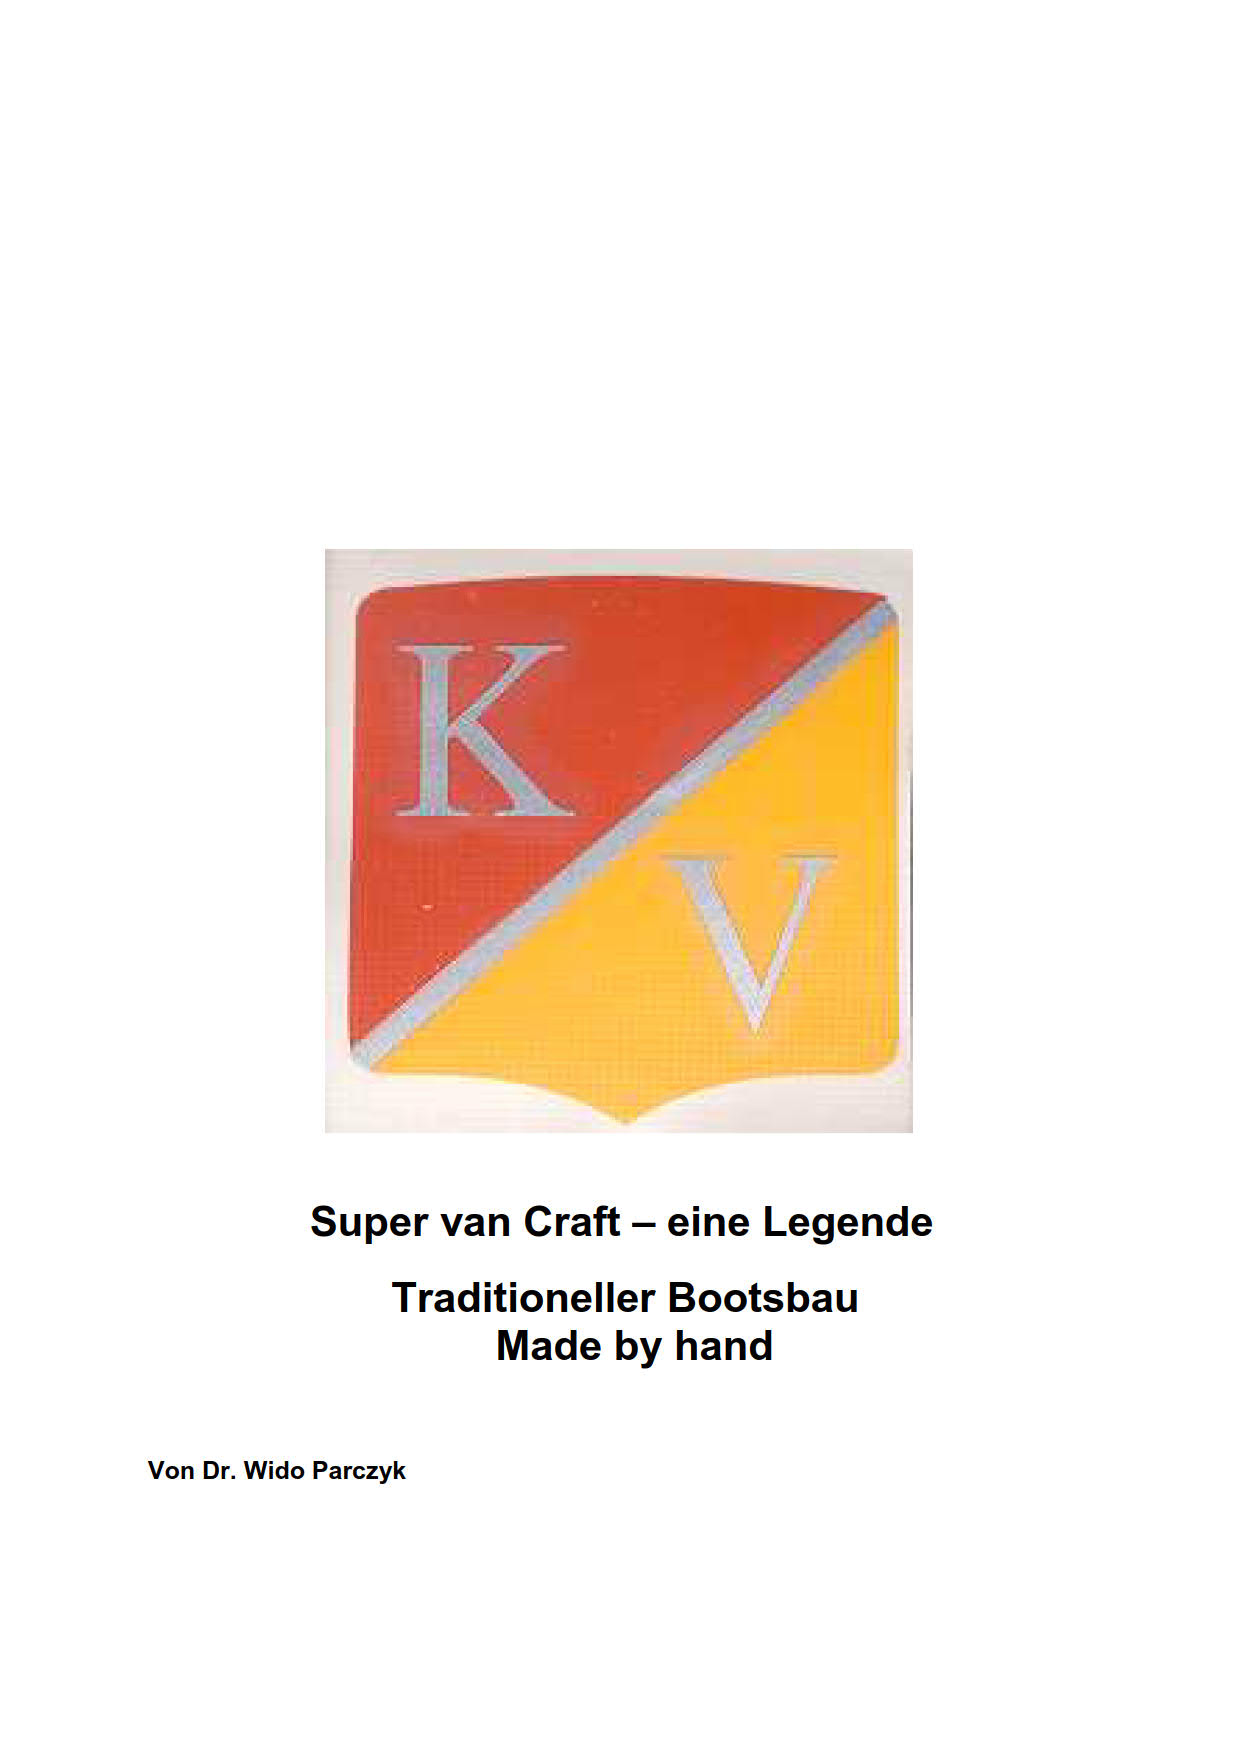 Super van Craft eine legende